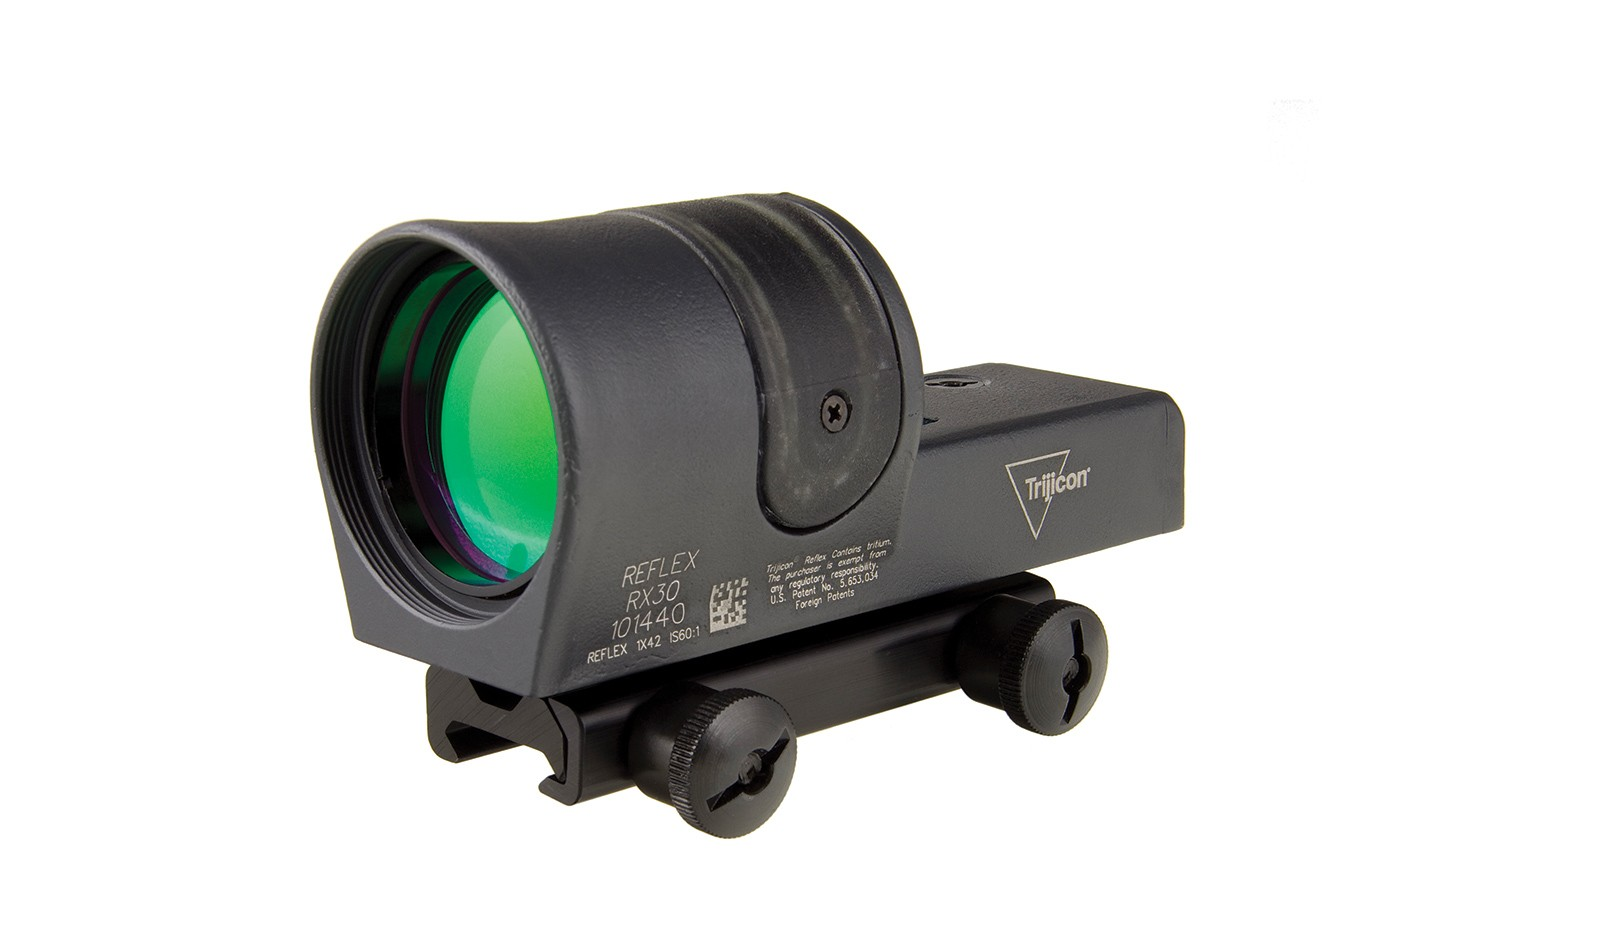 Trijicon<sup>®</sup> Reflex 1x42 Dual Illuminated Sight - Sniper Gray